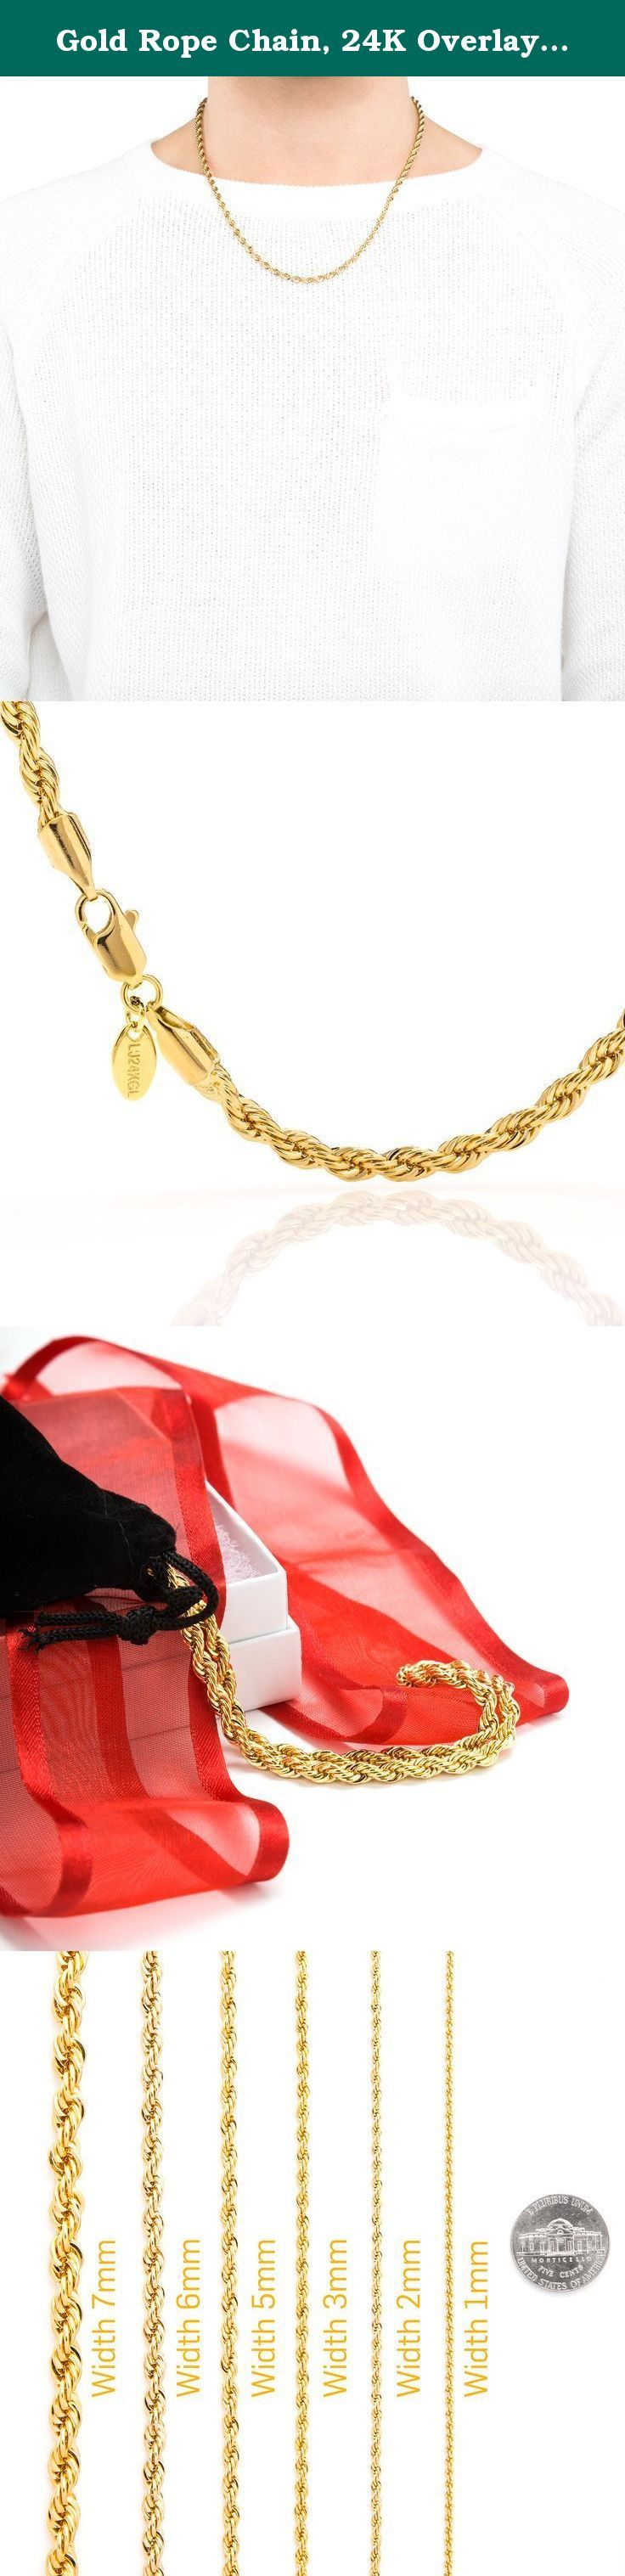 Gold Rope Chain, 24K Overlay, Stunning High End Necklace for Men or Women, Tarnish-Resistant, Guaranteed for Life, Made in USA by Lifetime Jewelry, Choker or Long, 18-36 inches, 5MM. Be the most stunning person in the crowd when you wear this Rope Chain Necklace by Lifetime Jewelry ! Coated with 24-karat gold over a heart of semi-precious metals, this rope chain necklace is stunningly beautiful. It looks charming on anyone and is perfect to wear on any occasion. This rope chain necklace…